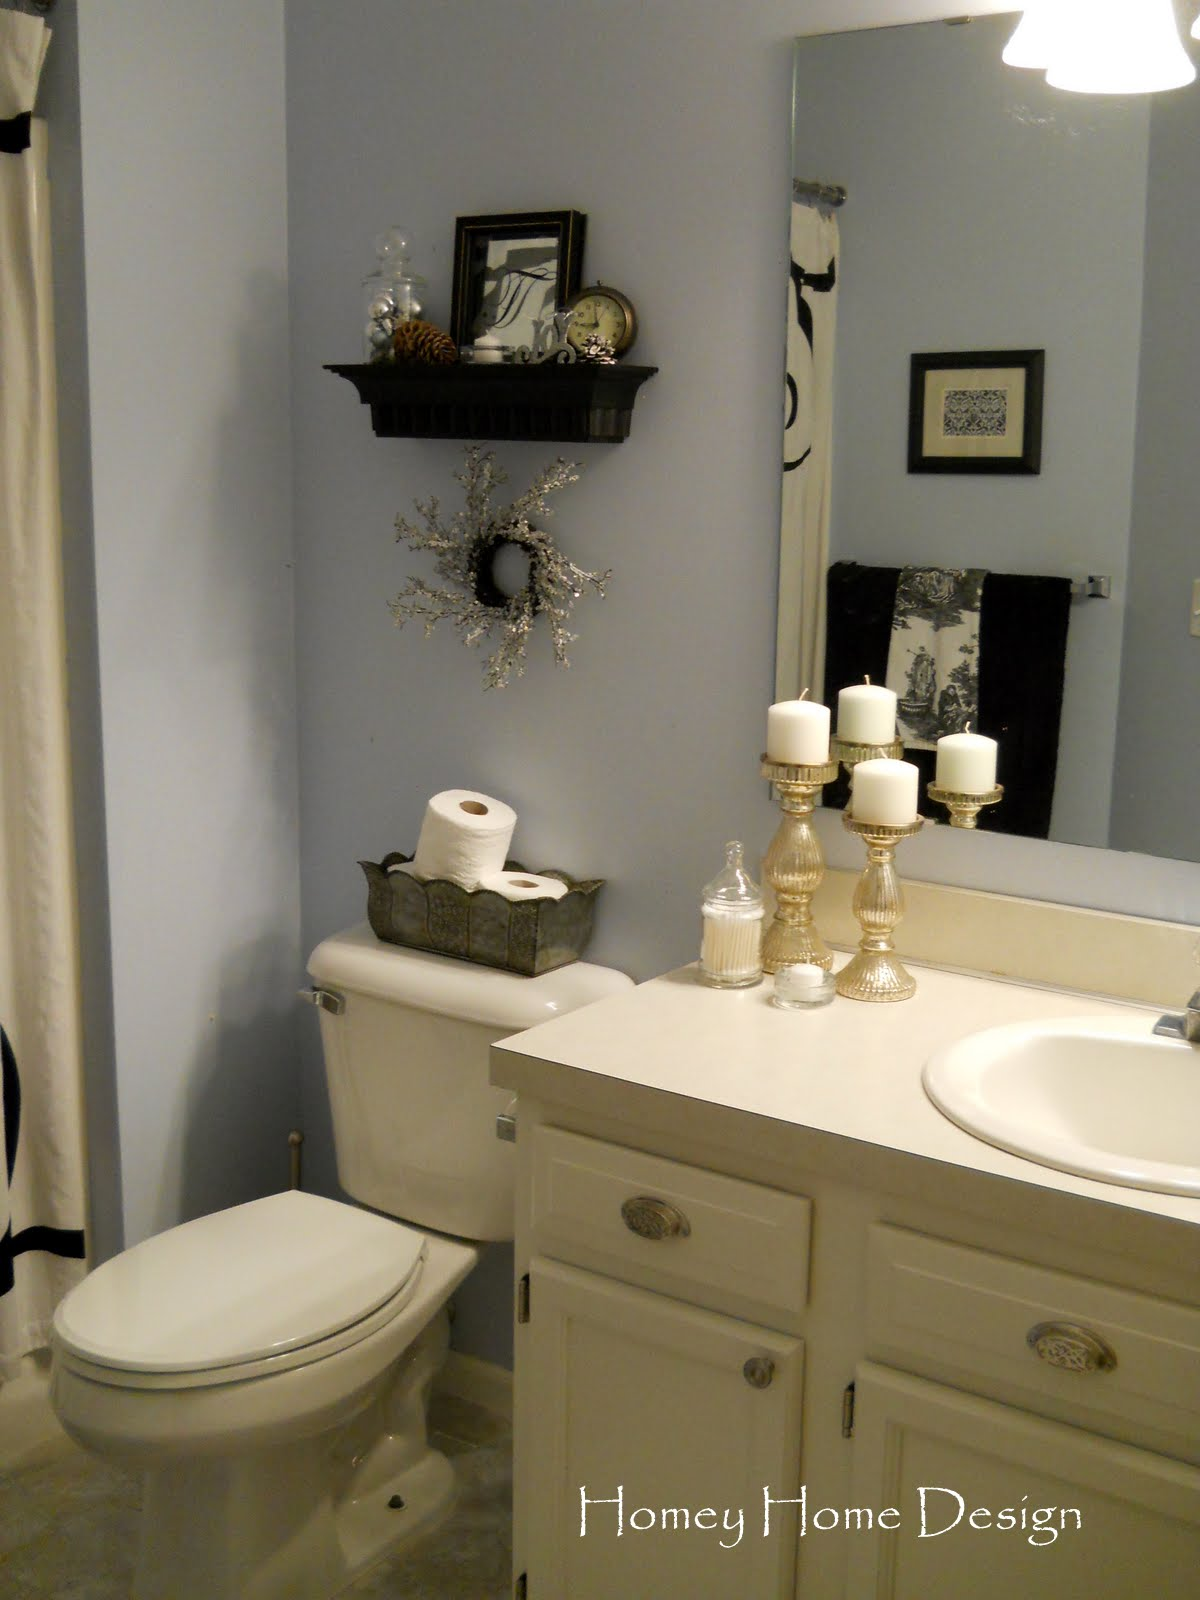 Popular Bathroom Decor Of Homey Home Design Christmas In The Bathroom